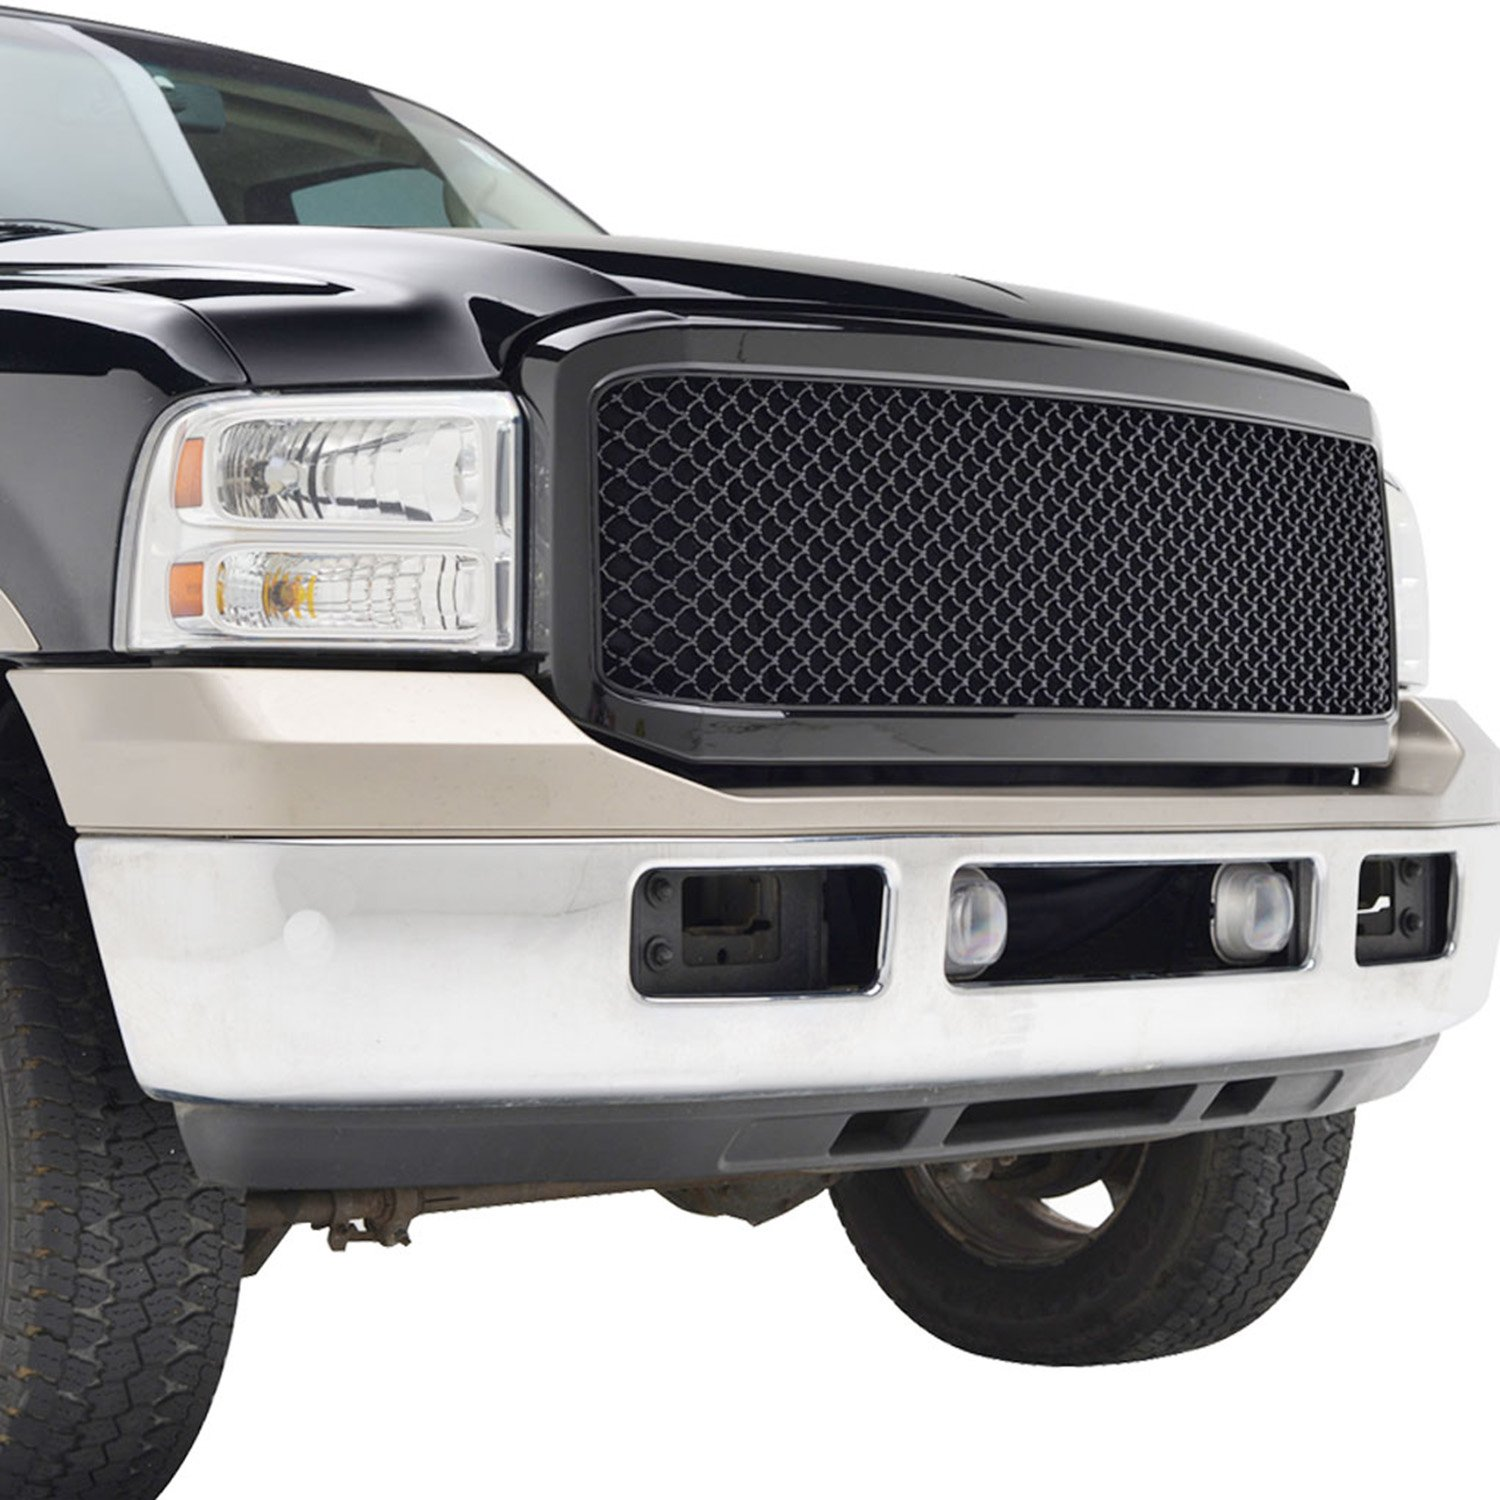 EAG 05-07 Ford F-250/F-350 Super Duty Replacement Ford Grille Black ABS Grill With Shell E-Autogrilles